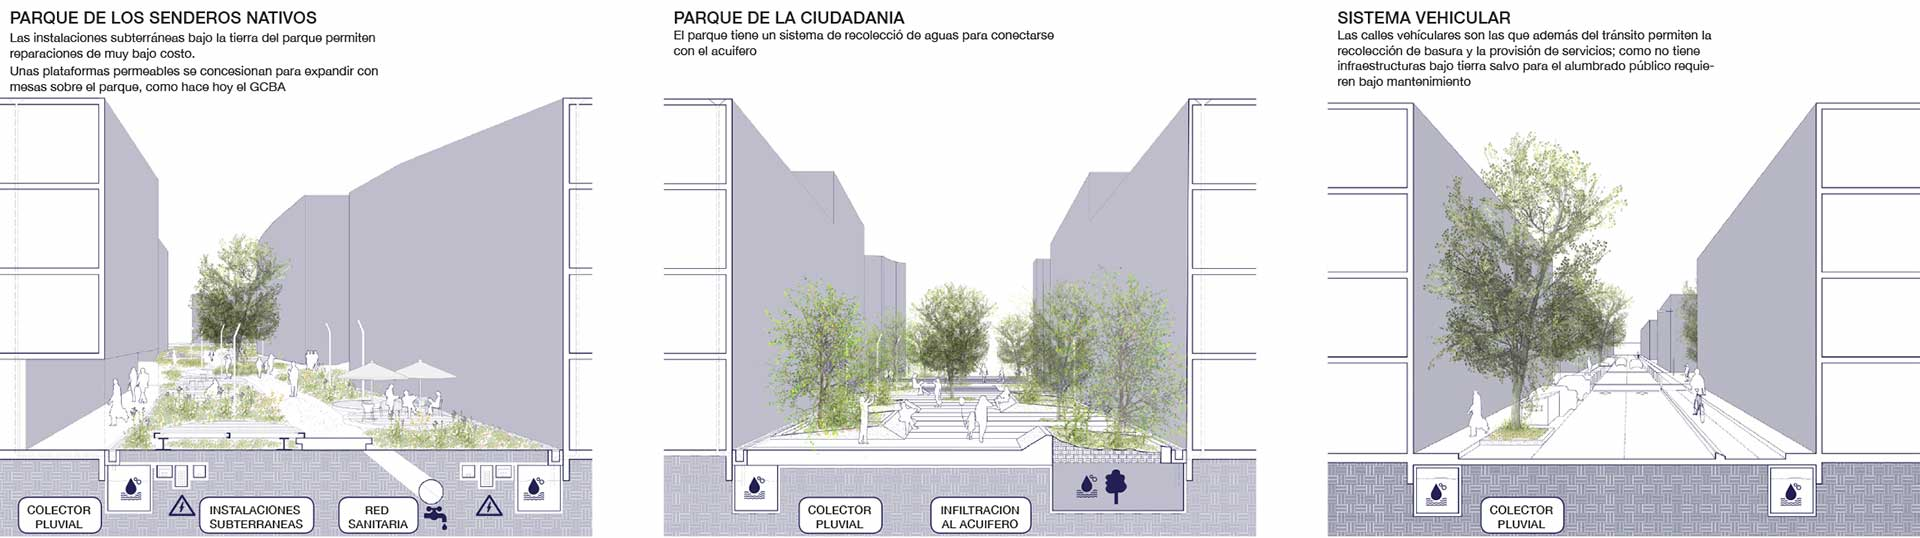 Architecture, Landscape and Urbanism, Cuts of the different connections subsisting on connections and the advantage over the traditional plot